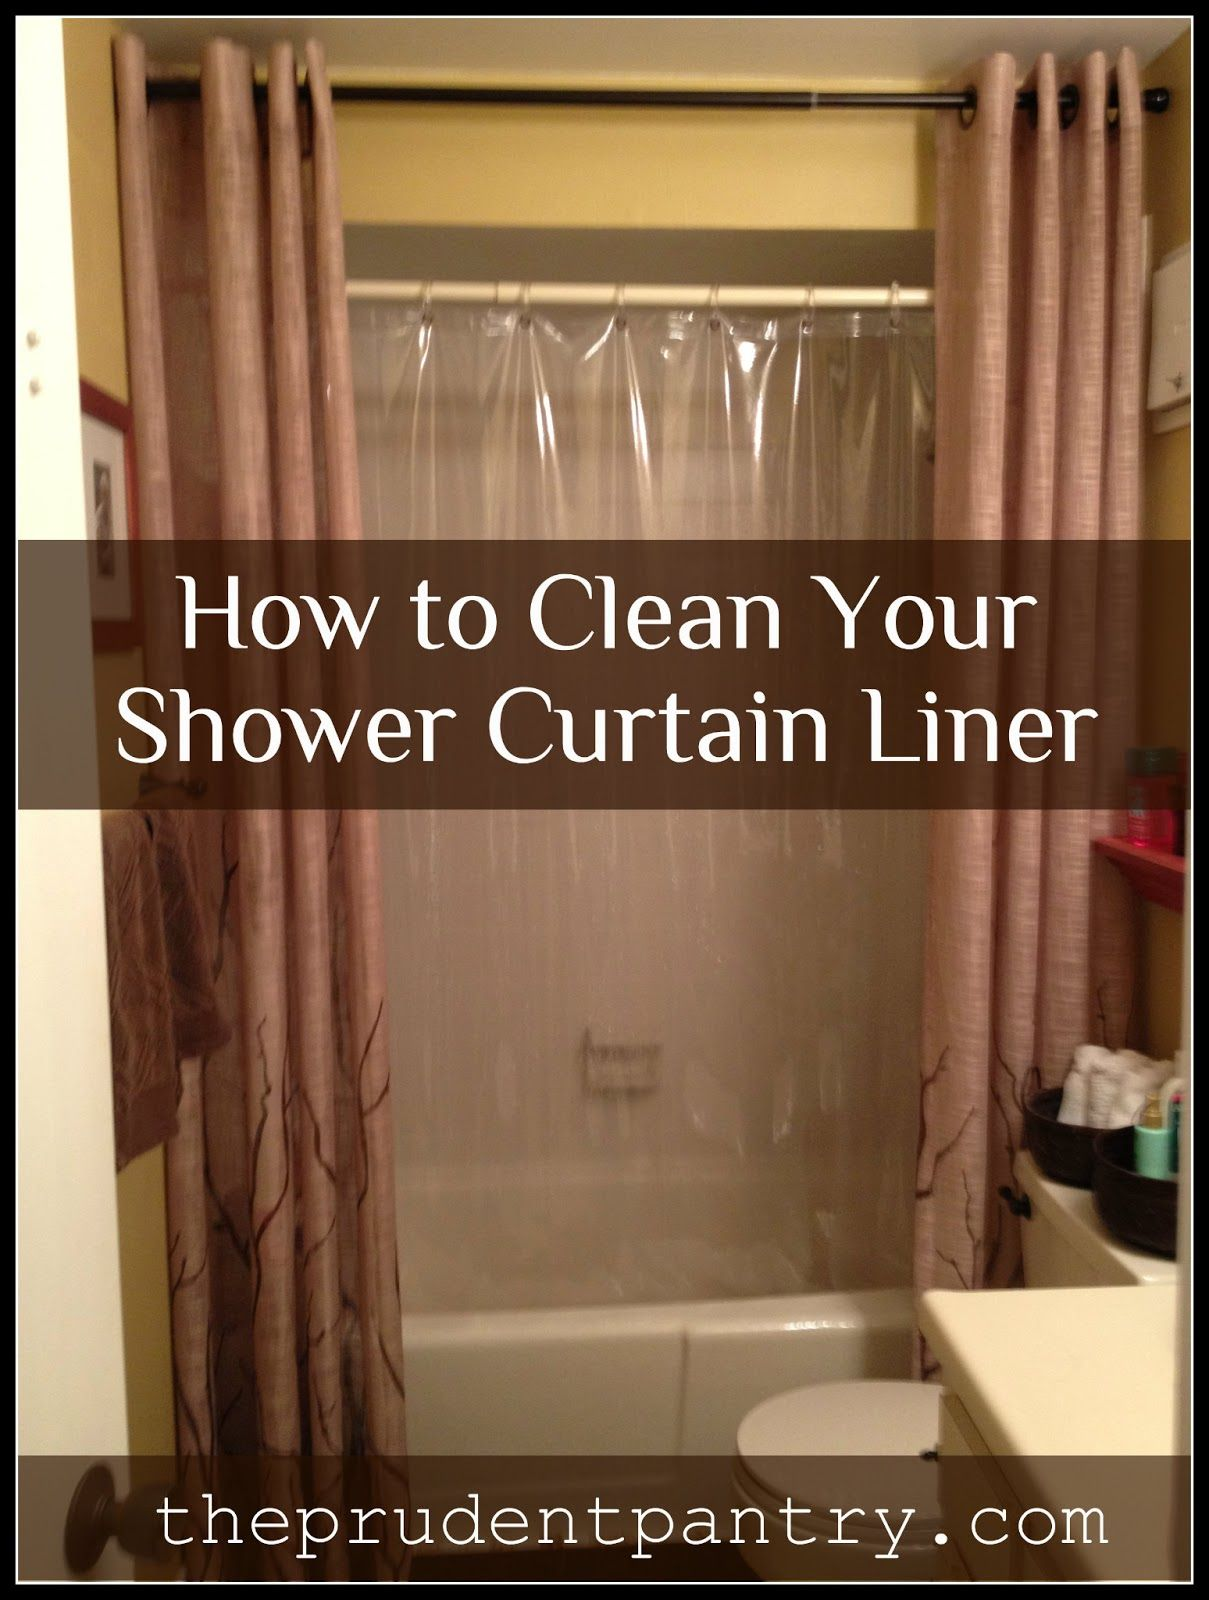 How To Clean Your Shower Curtain Liner With Images Plastic